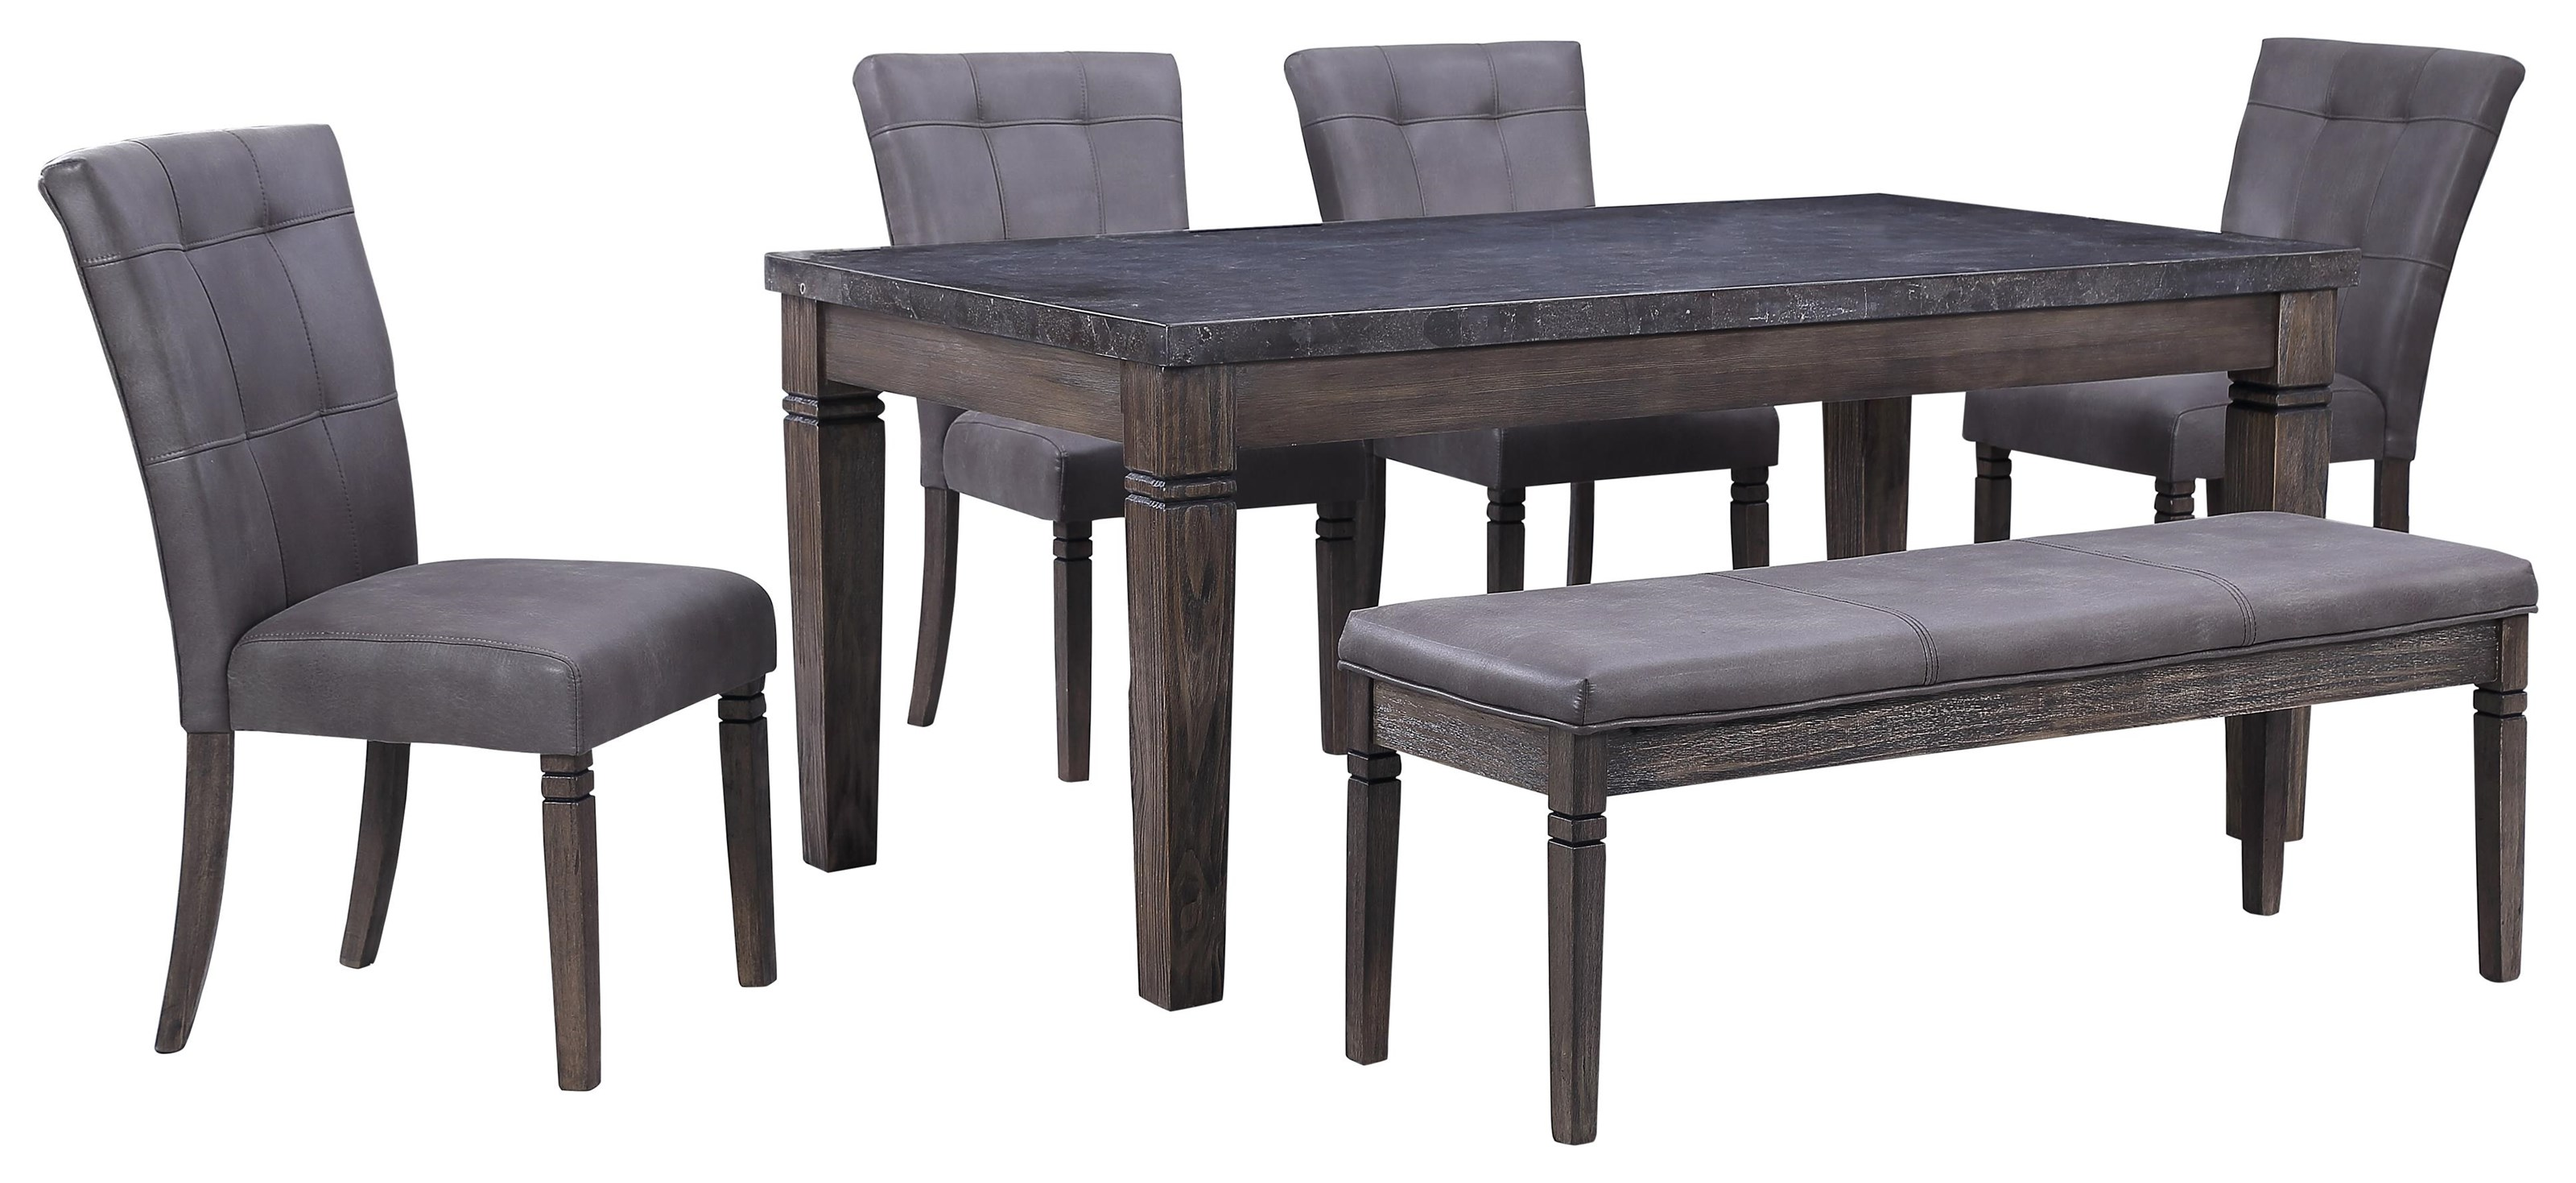 Fillmore Dining Bench by Offshore Furniture Source at Sam Levitz Furniture